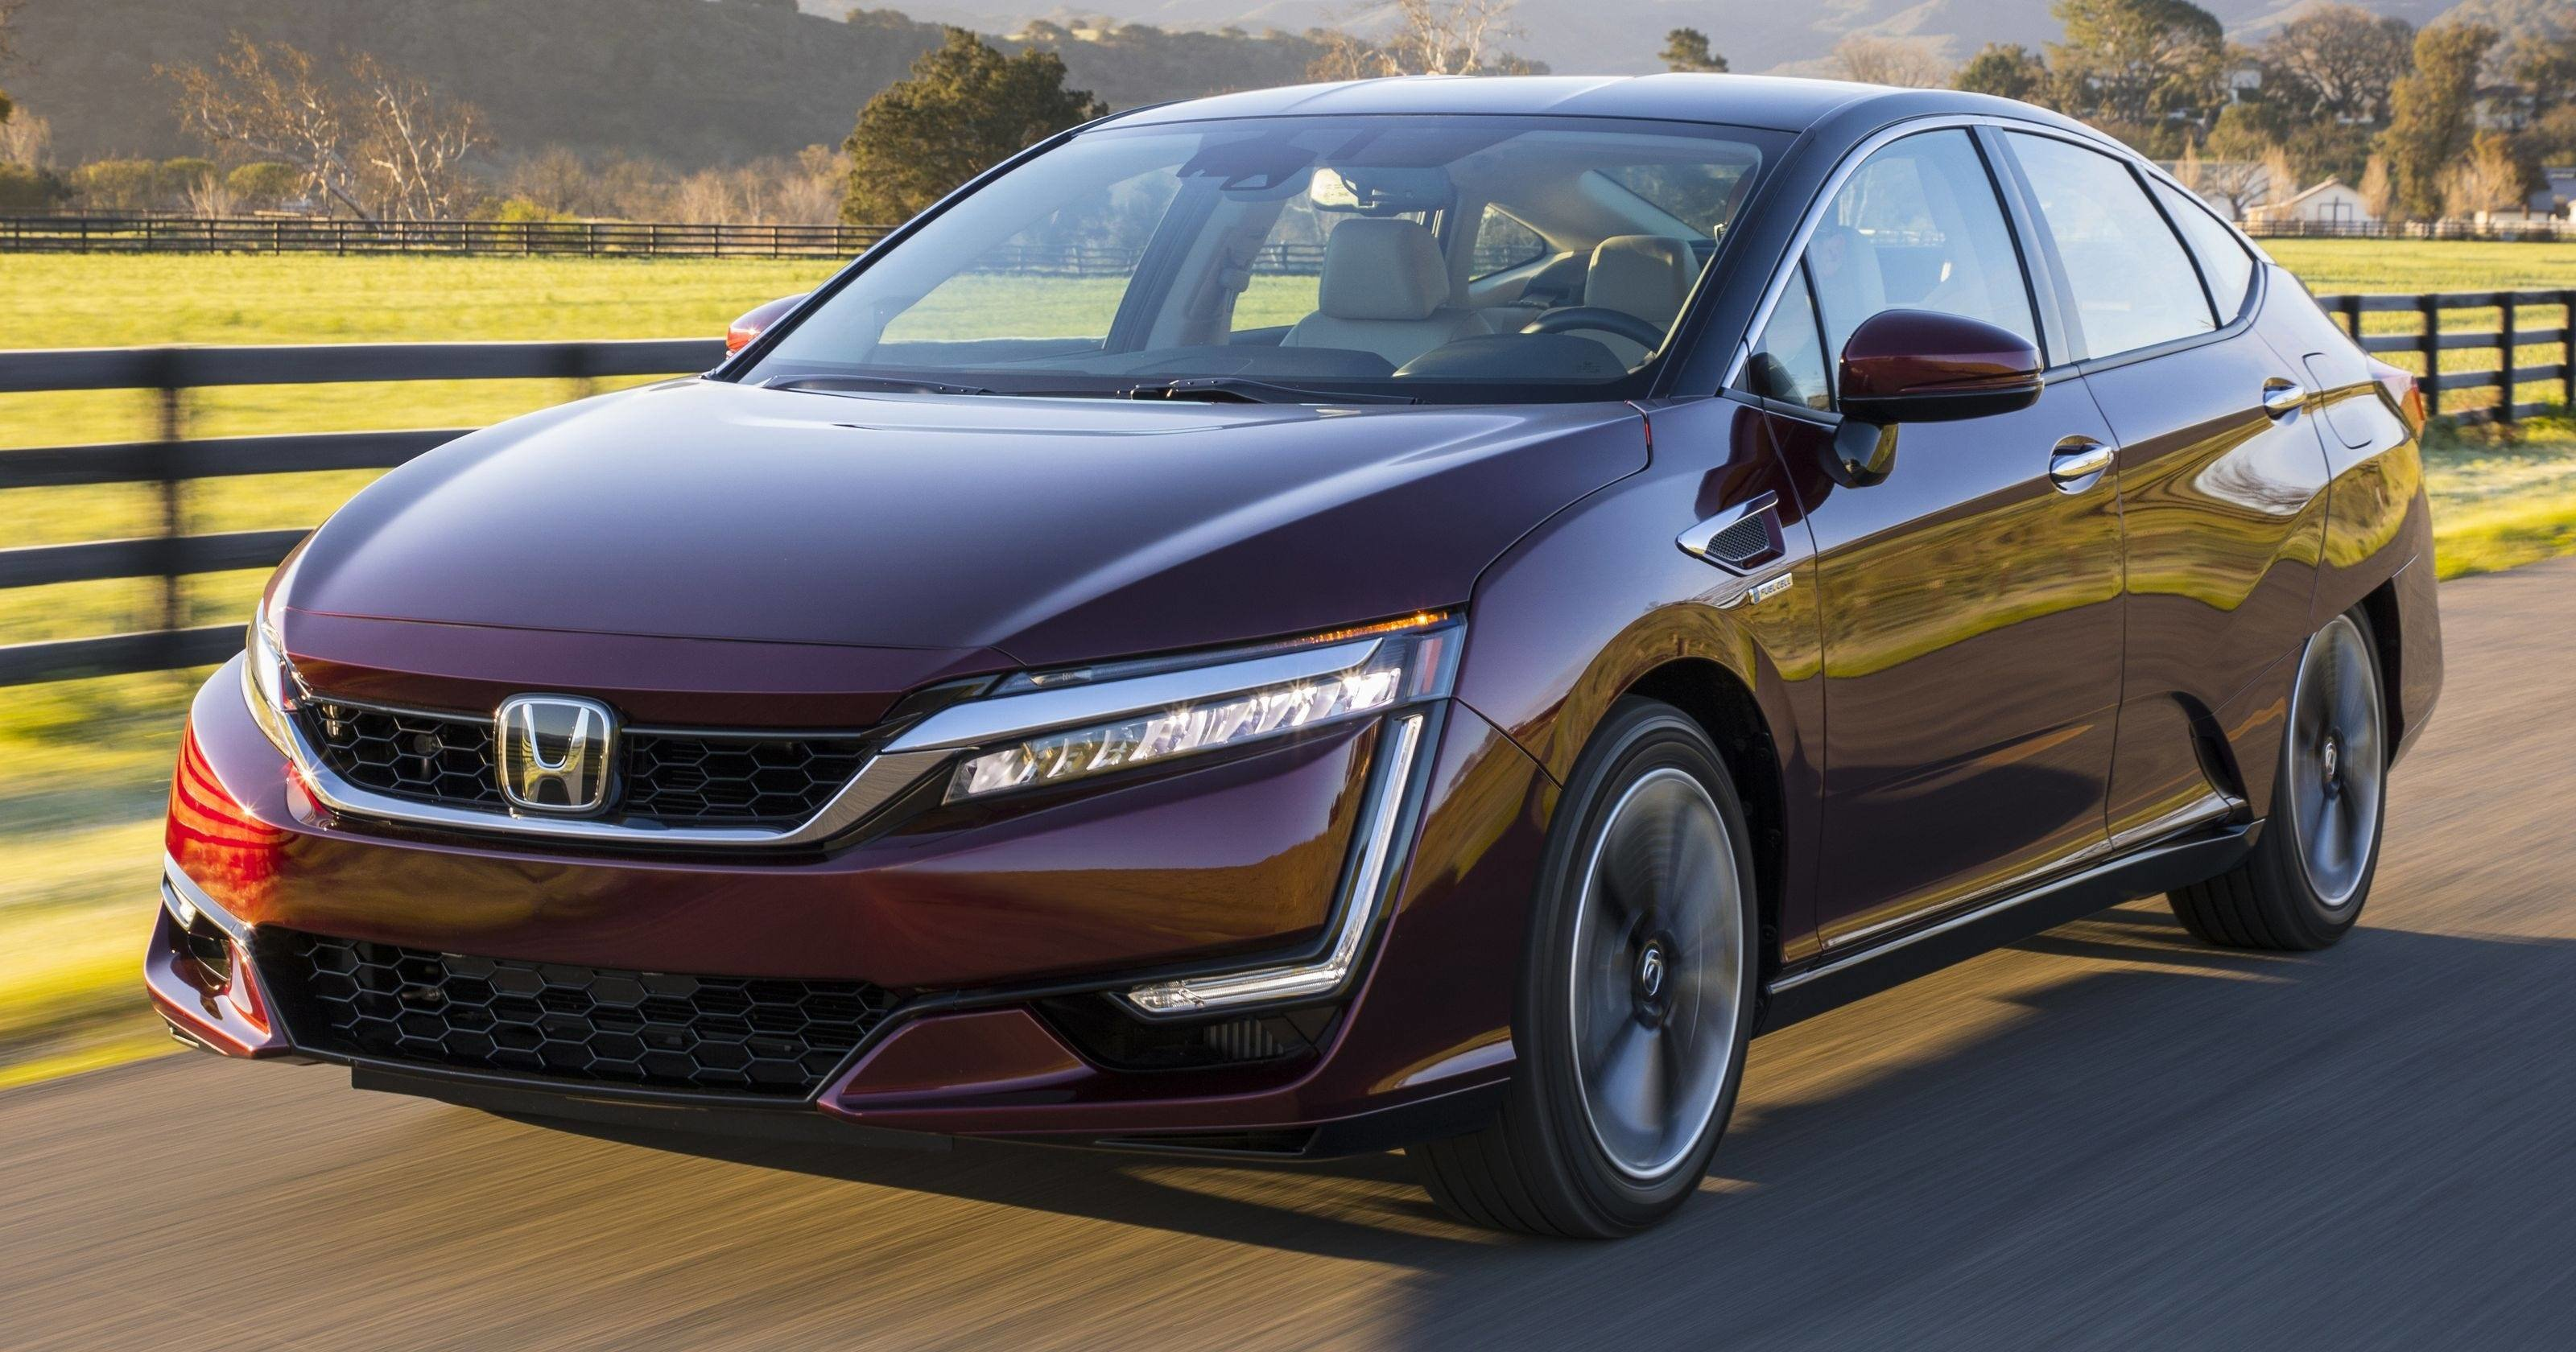 New Review Honda Clarity Hydrogen Car Won T Go The Distance On This Month